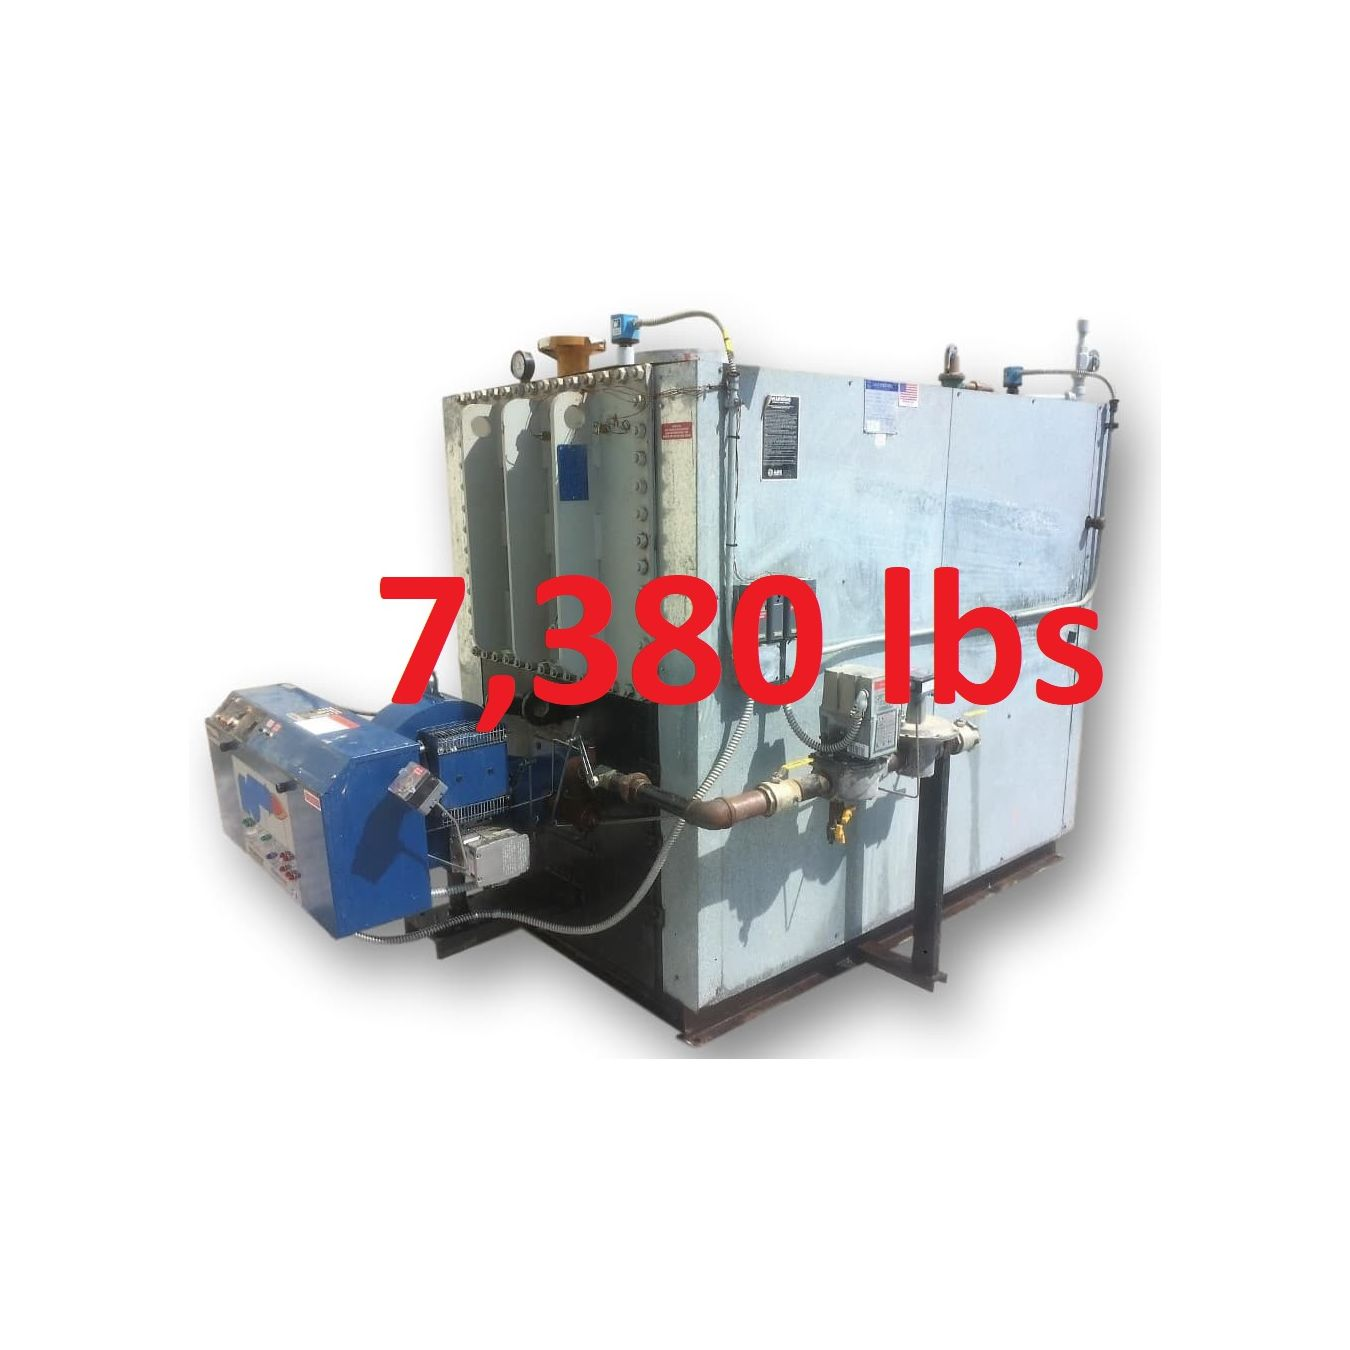 used ajax industrial boiler forced draft gas hot boiler water heaterused ajax industrial boiler forced draft